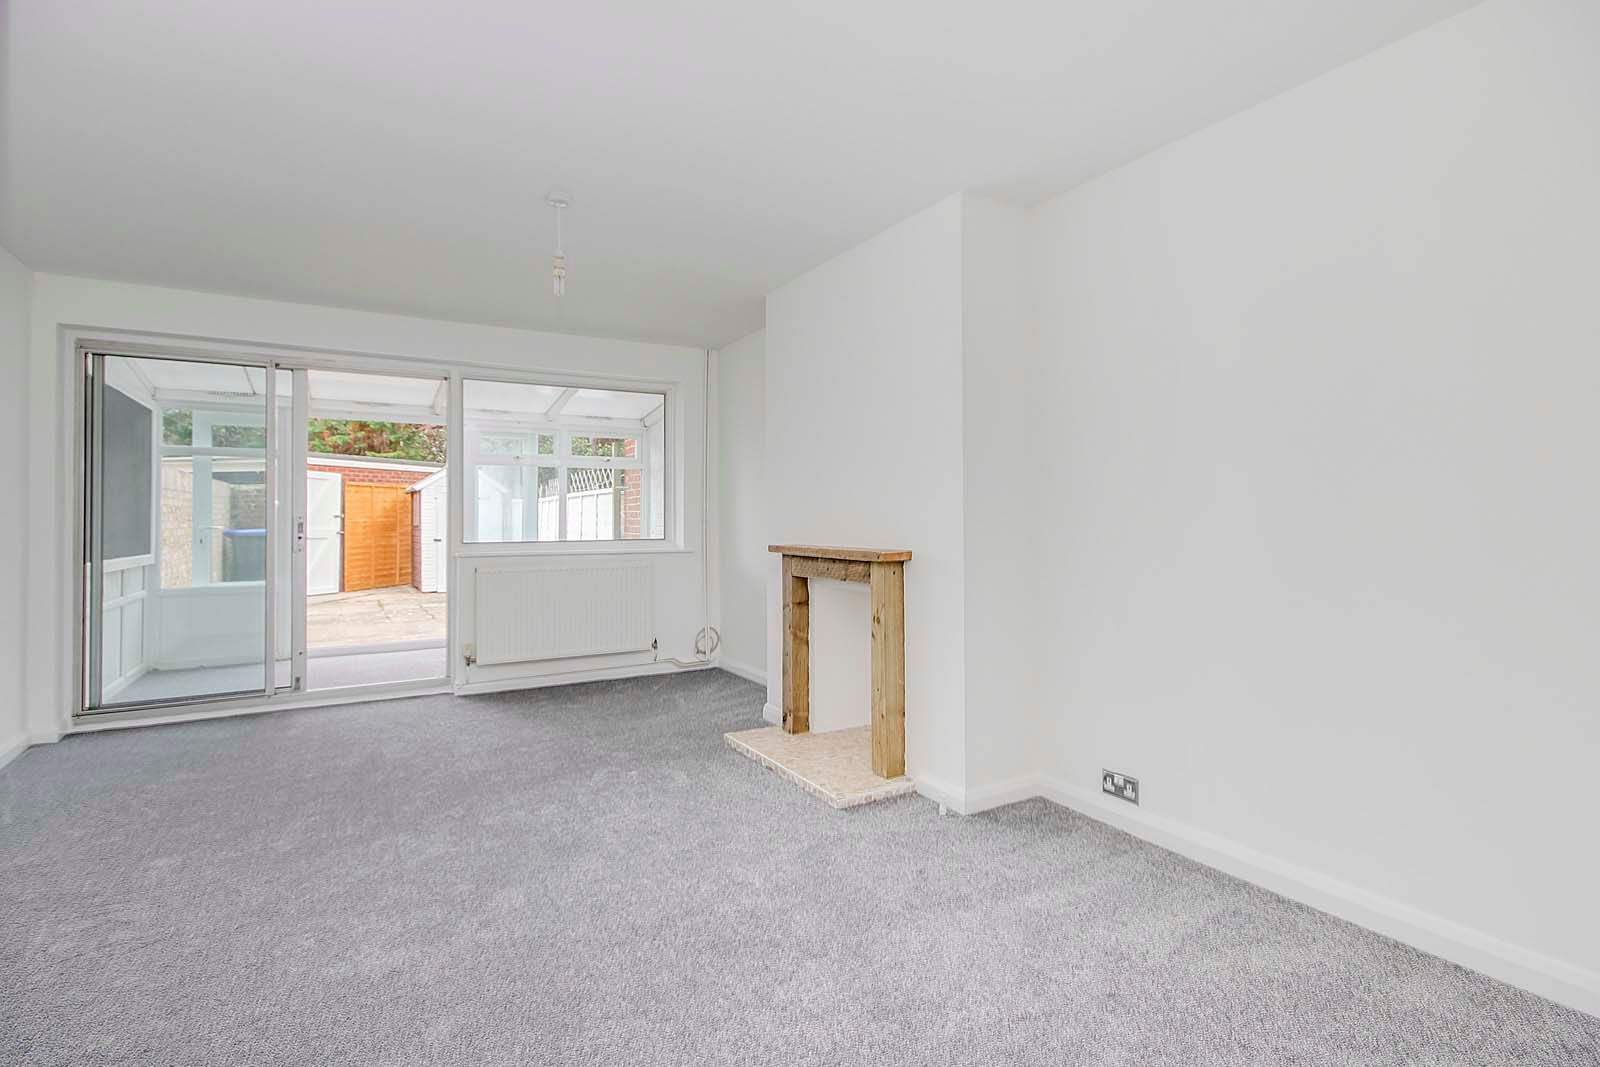 2 bed house for sale in Church Way COMP Jan 2019 2